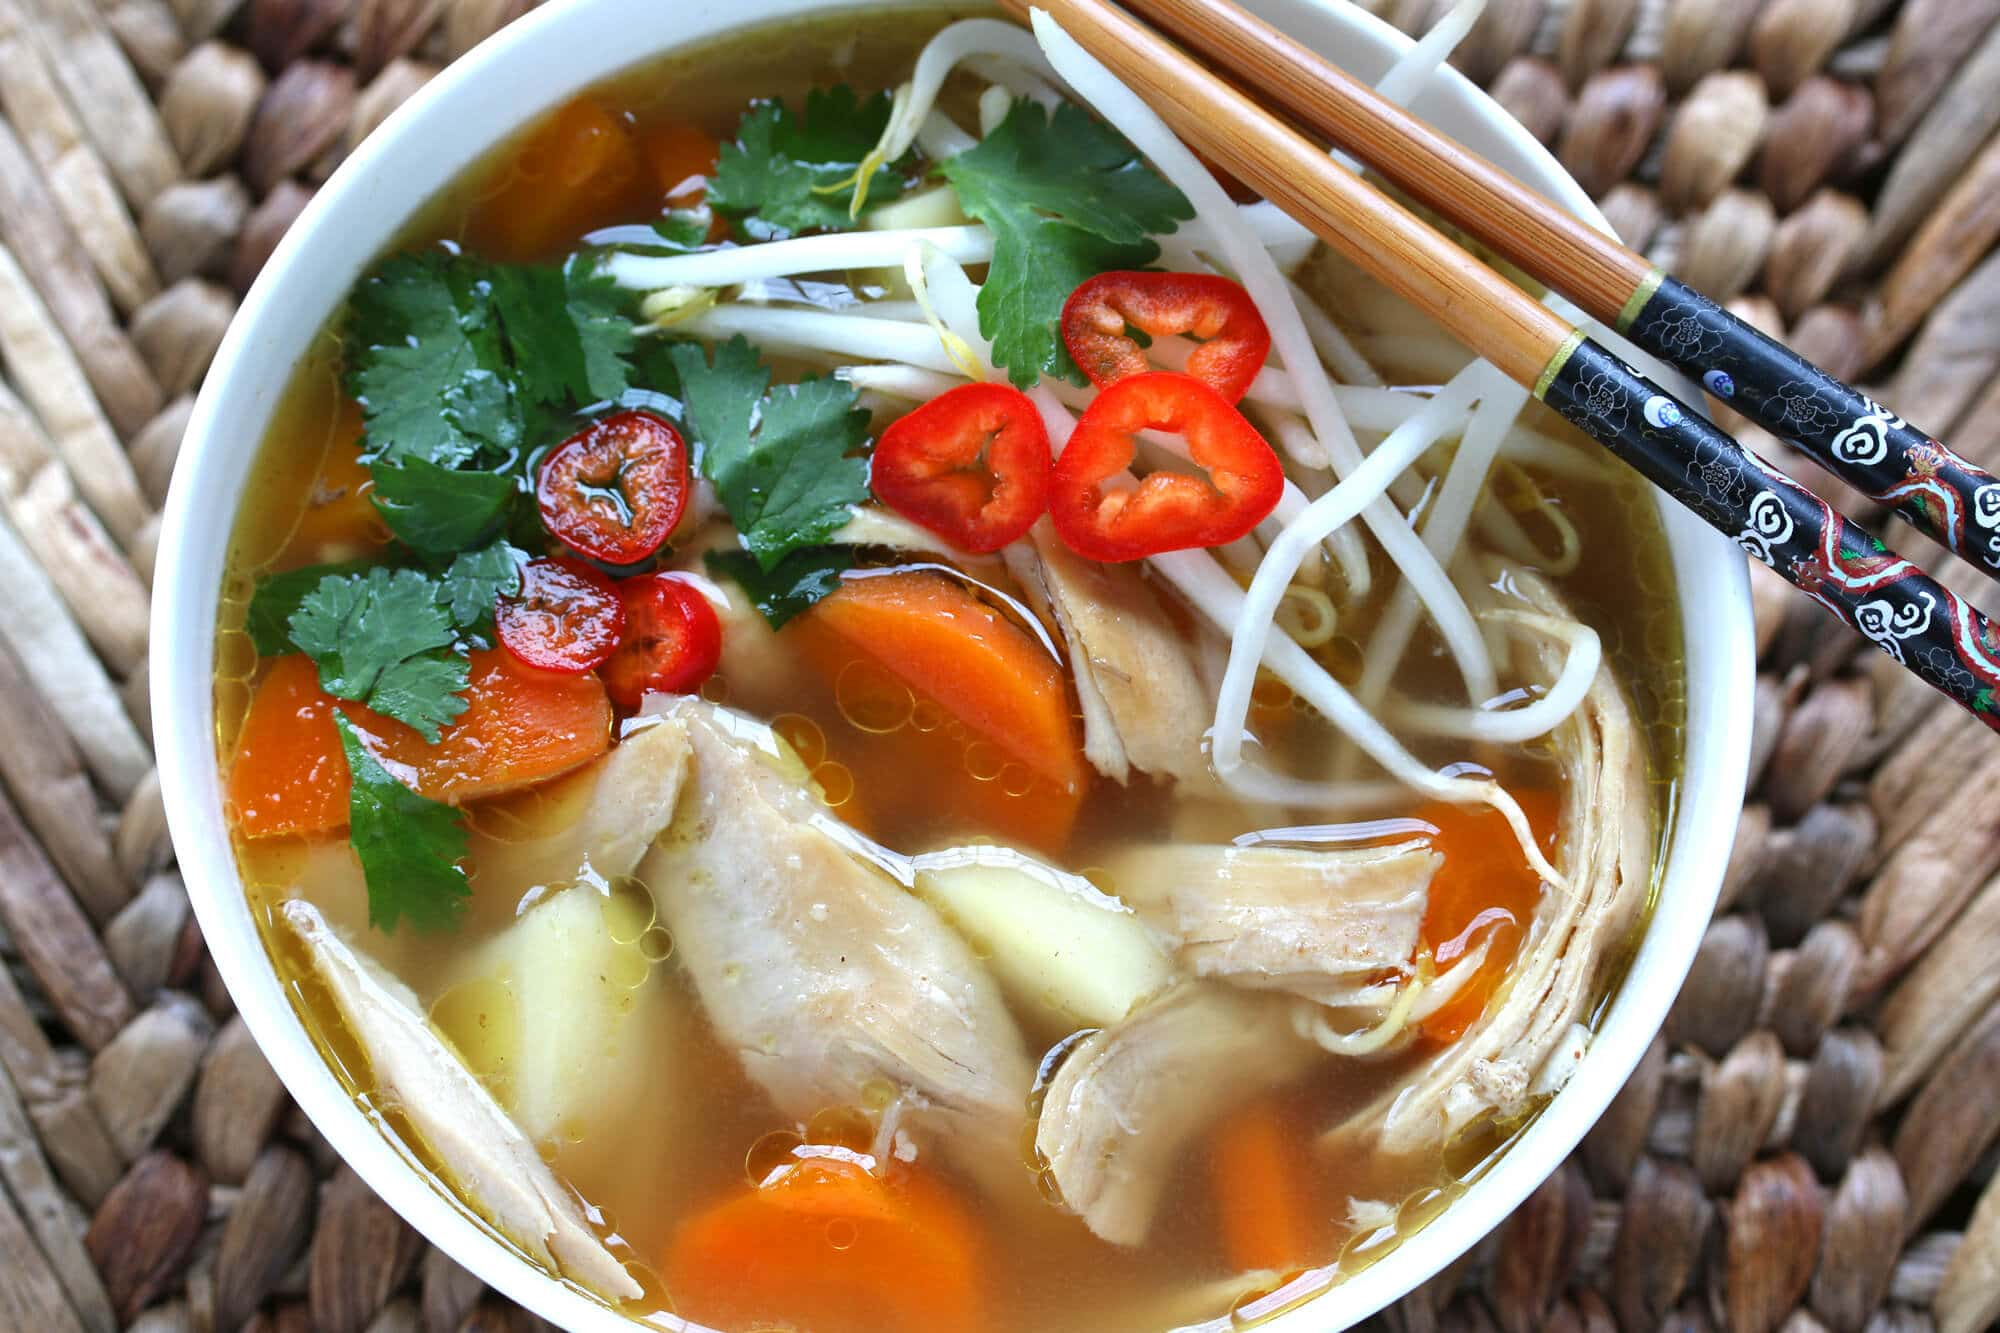 asian spiced chicken vegetable soup recipe chinese indonesian thai malaysian star anise fennel cinnamon cardamom cloves lemongrass aneto broth